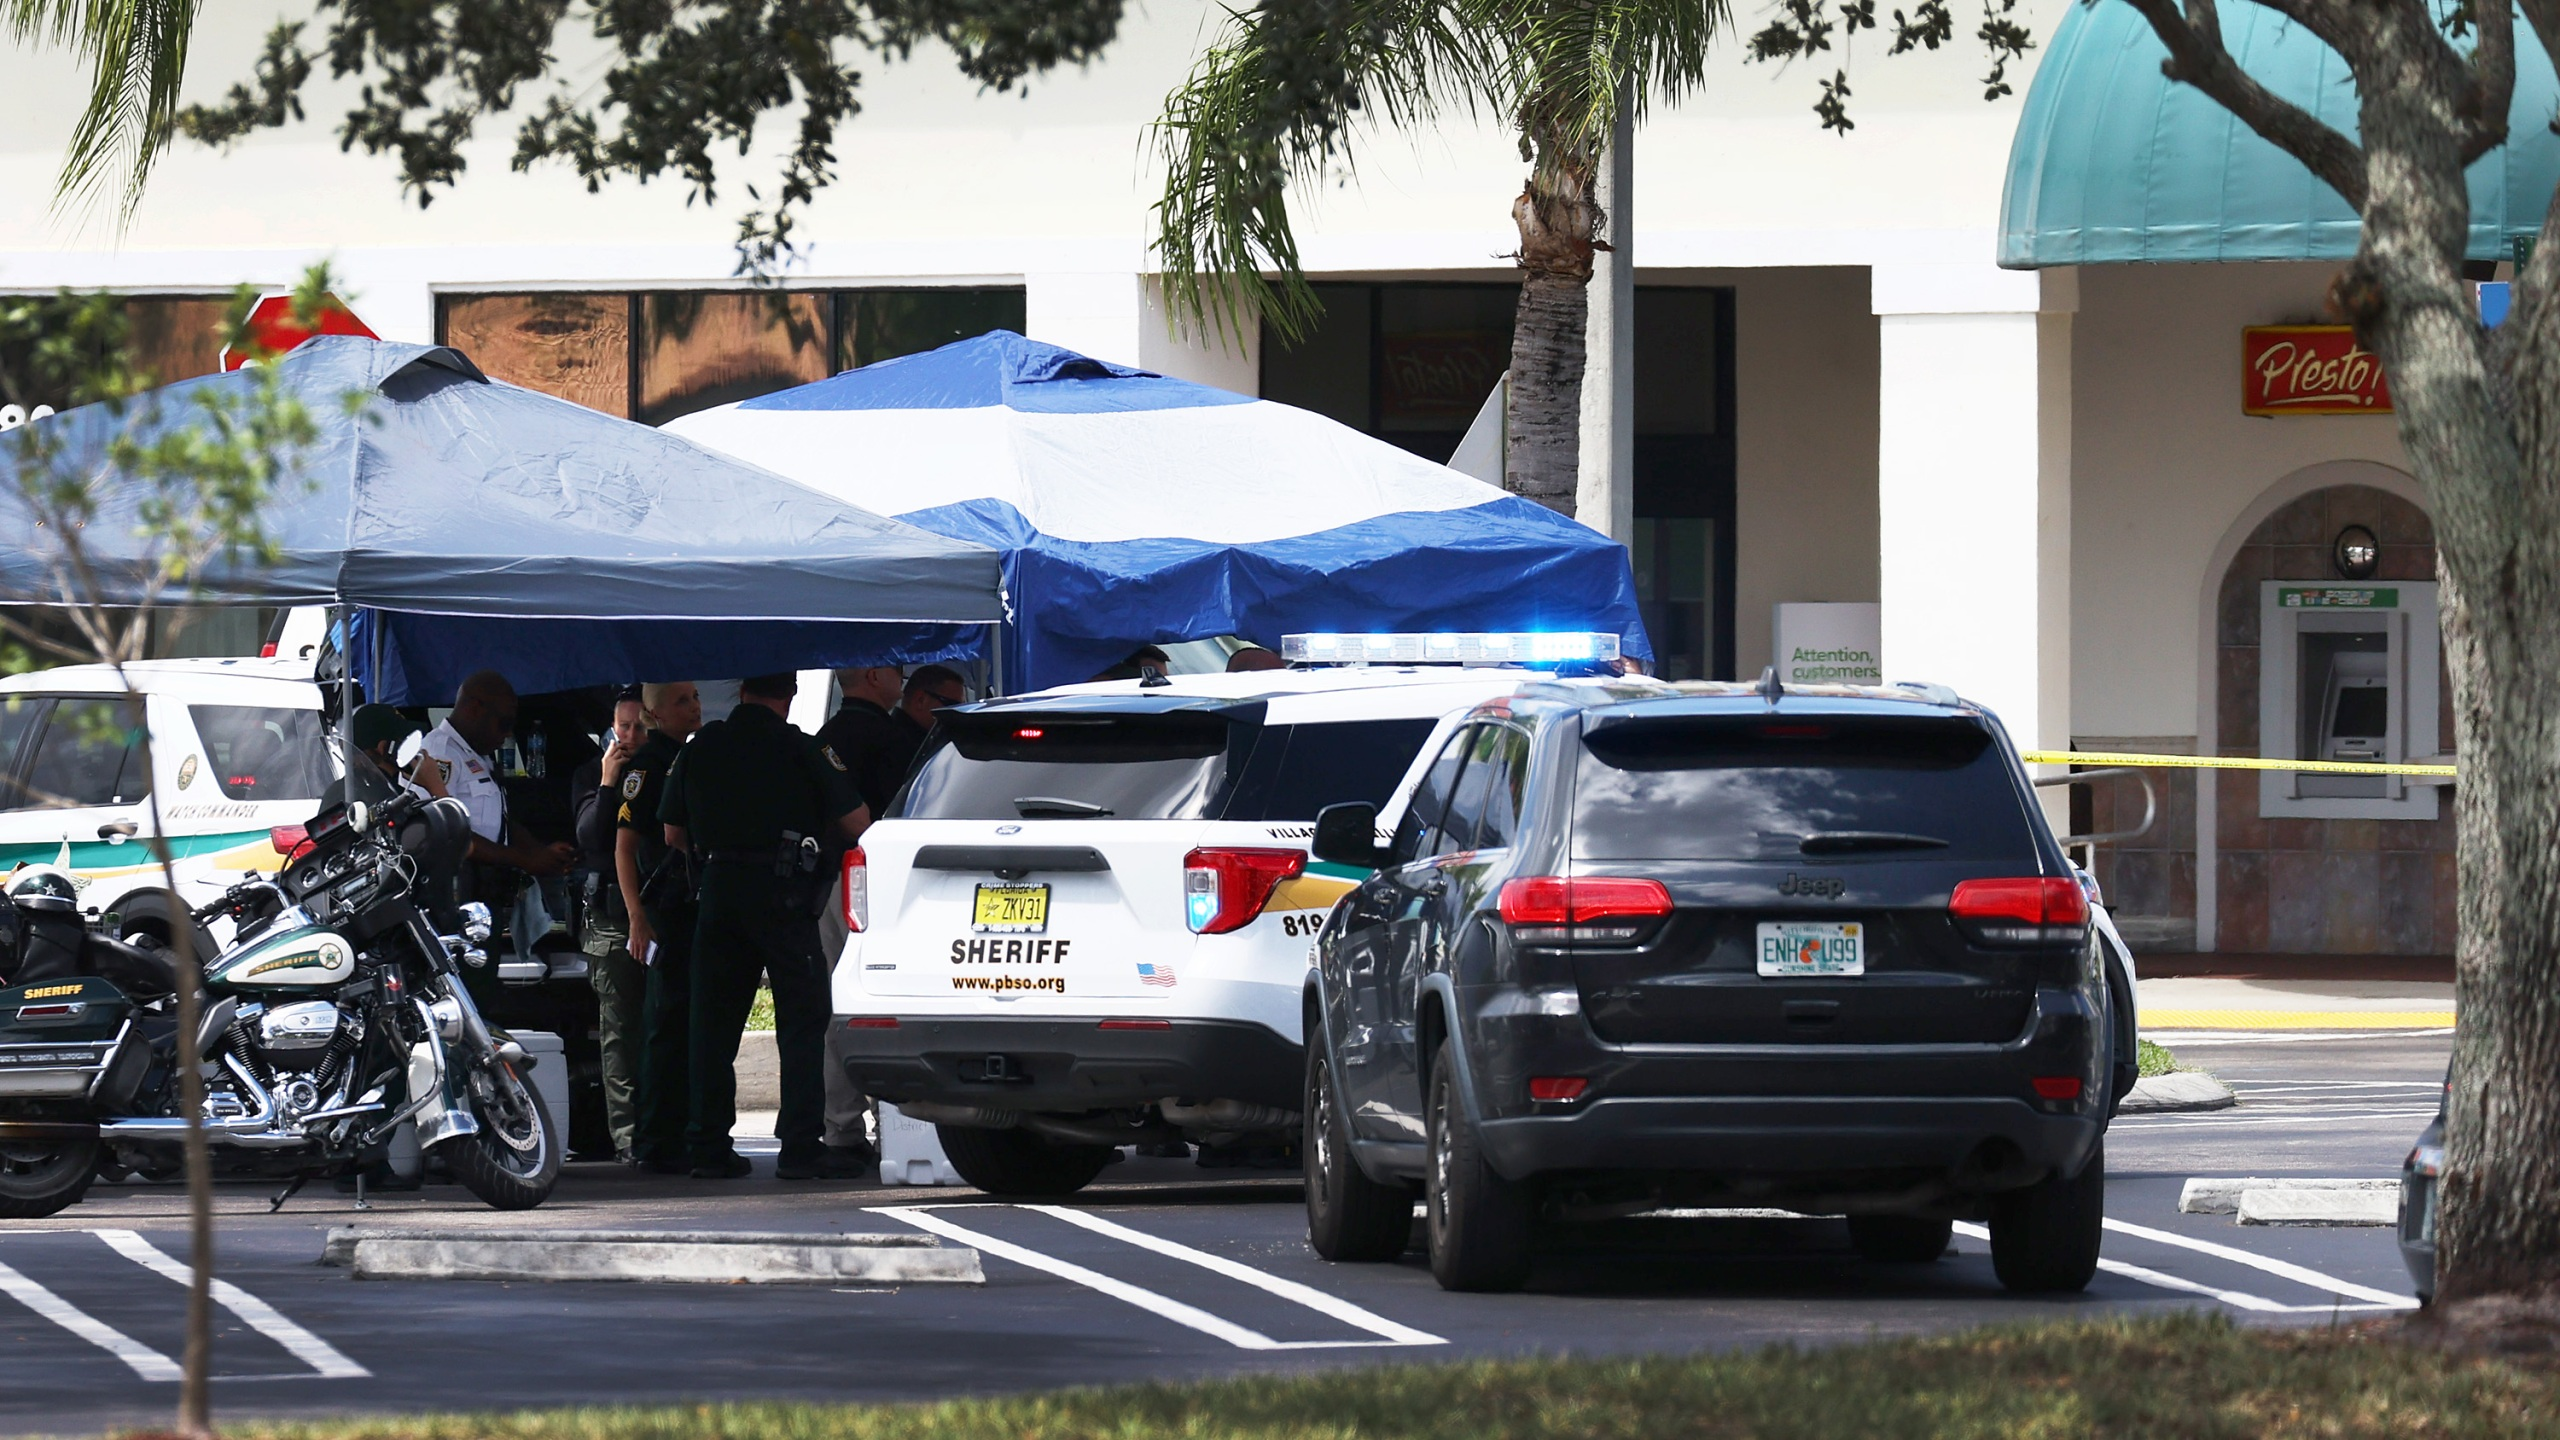 Palm Beach County Sheriff's officers stand outside of a Publix supermarket in Royal Palm Beach, Florida, where a woman, child and a man were found shot to death on June 10, 2021. (Joe Raedle / Getty Images)